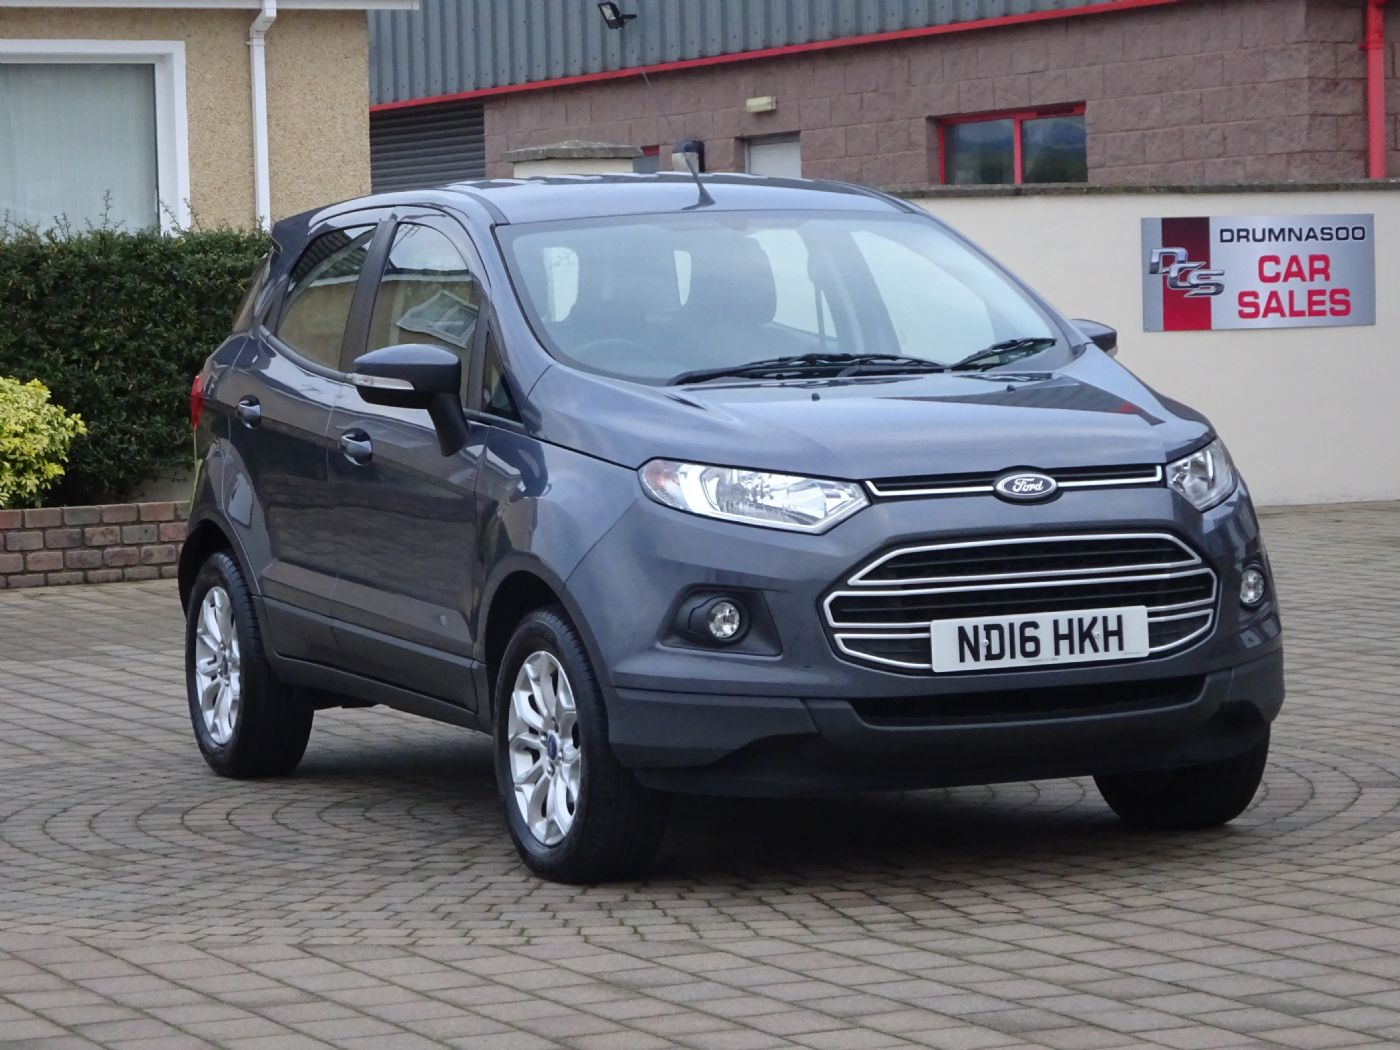 Ford EcoSport Zetec 1.5  Tdci, £30 Road tax, Heated front seats